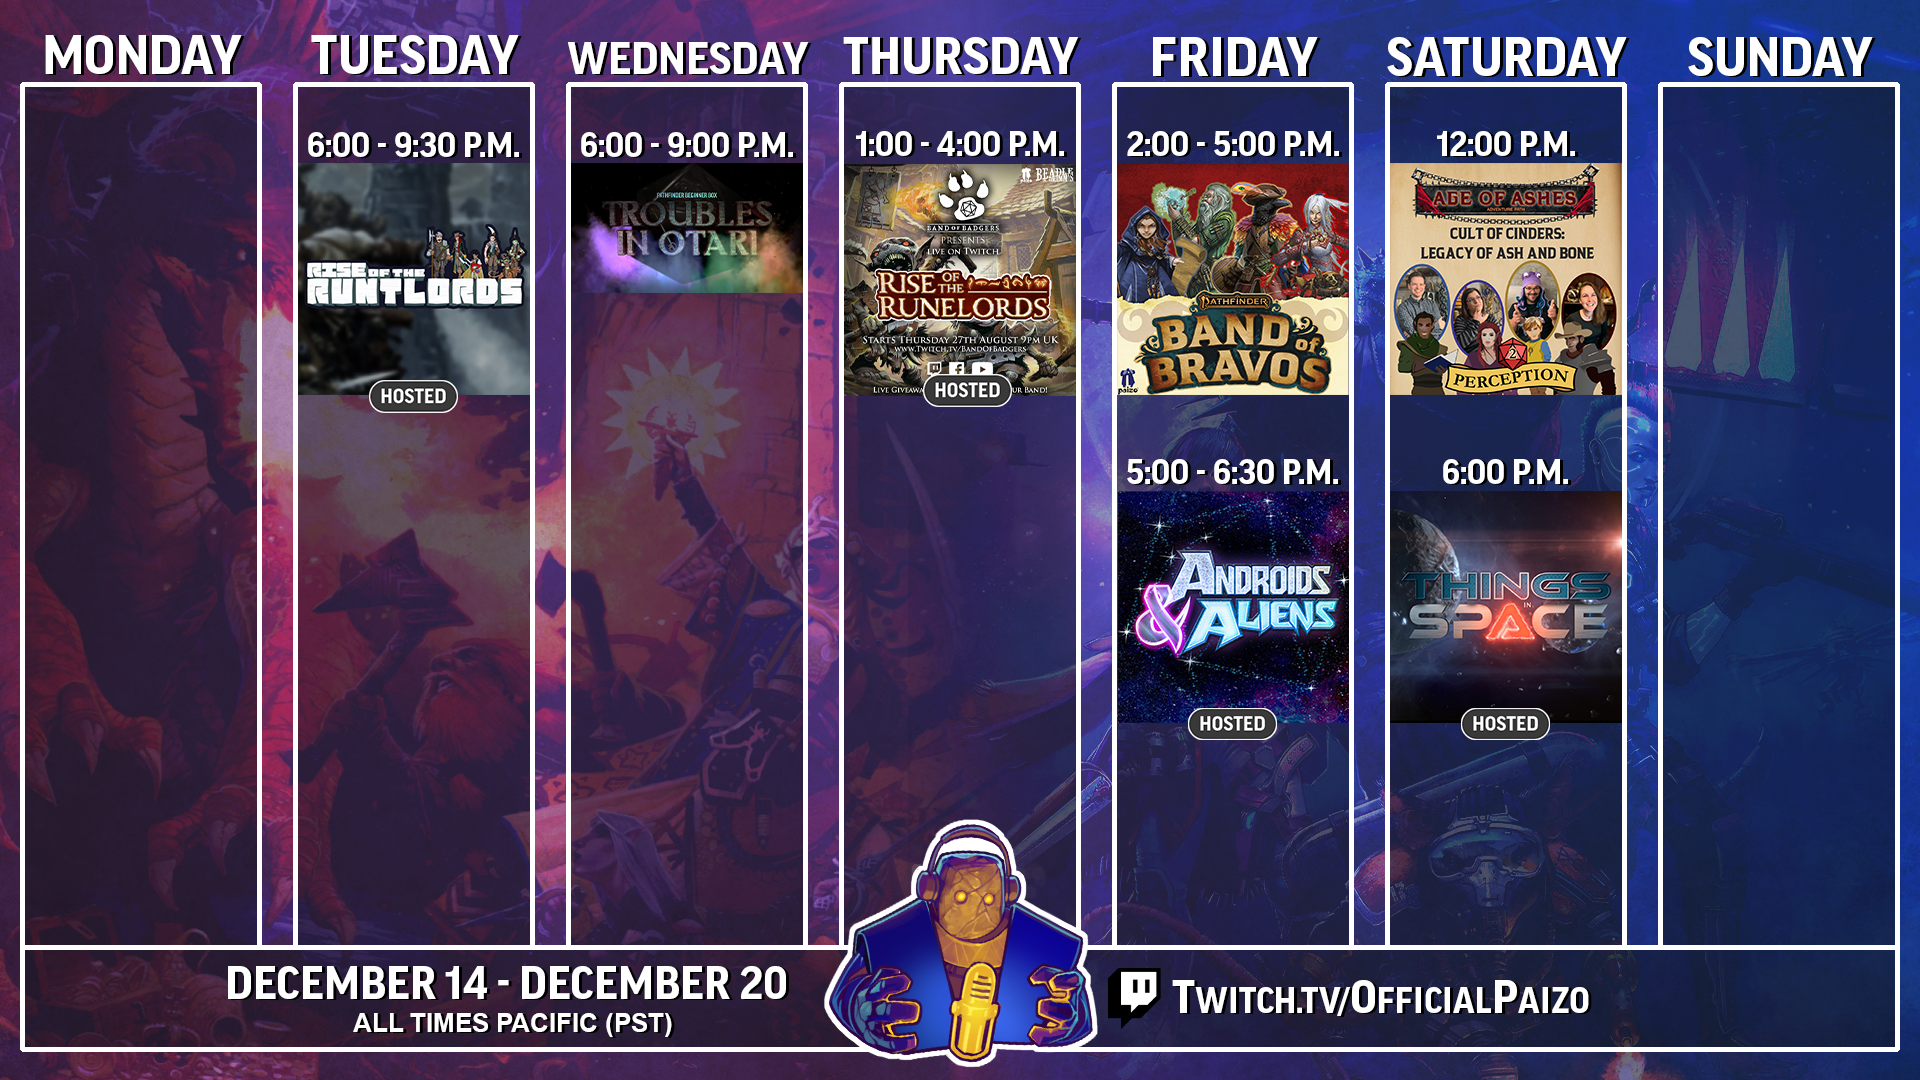 Official Paizo Twitch streaming schedule for December 14 to the 20th, featuring Rise of the Runtlords on Tuesdsay, Troubles in Otari on Wednesday, Band of Badgers on Thursday, Band of Bravos followed by Androids and Aliens on Friday, Age of Ashes and Things in Space on Saturday